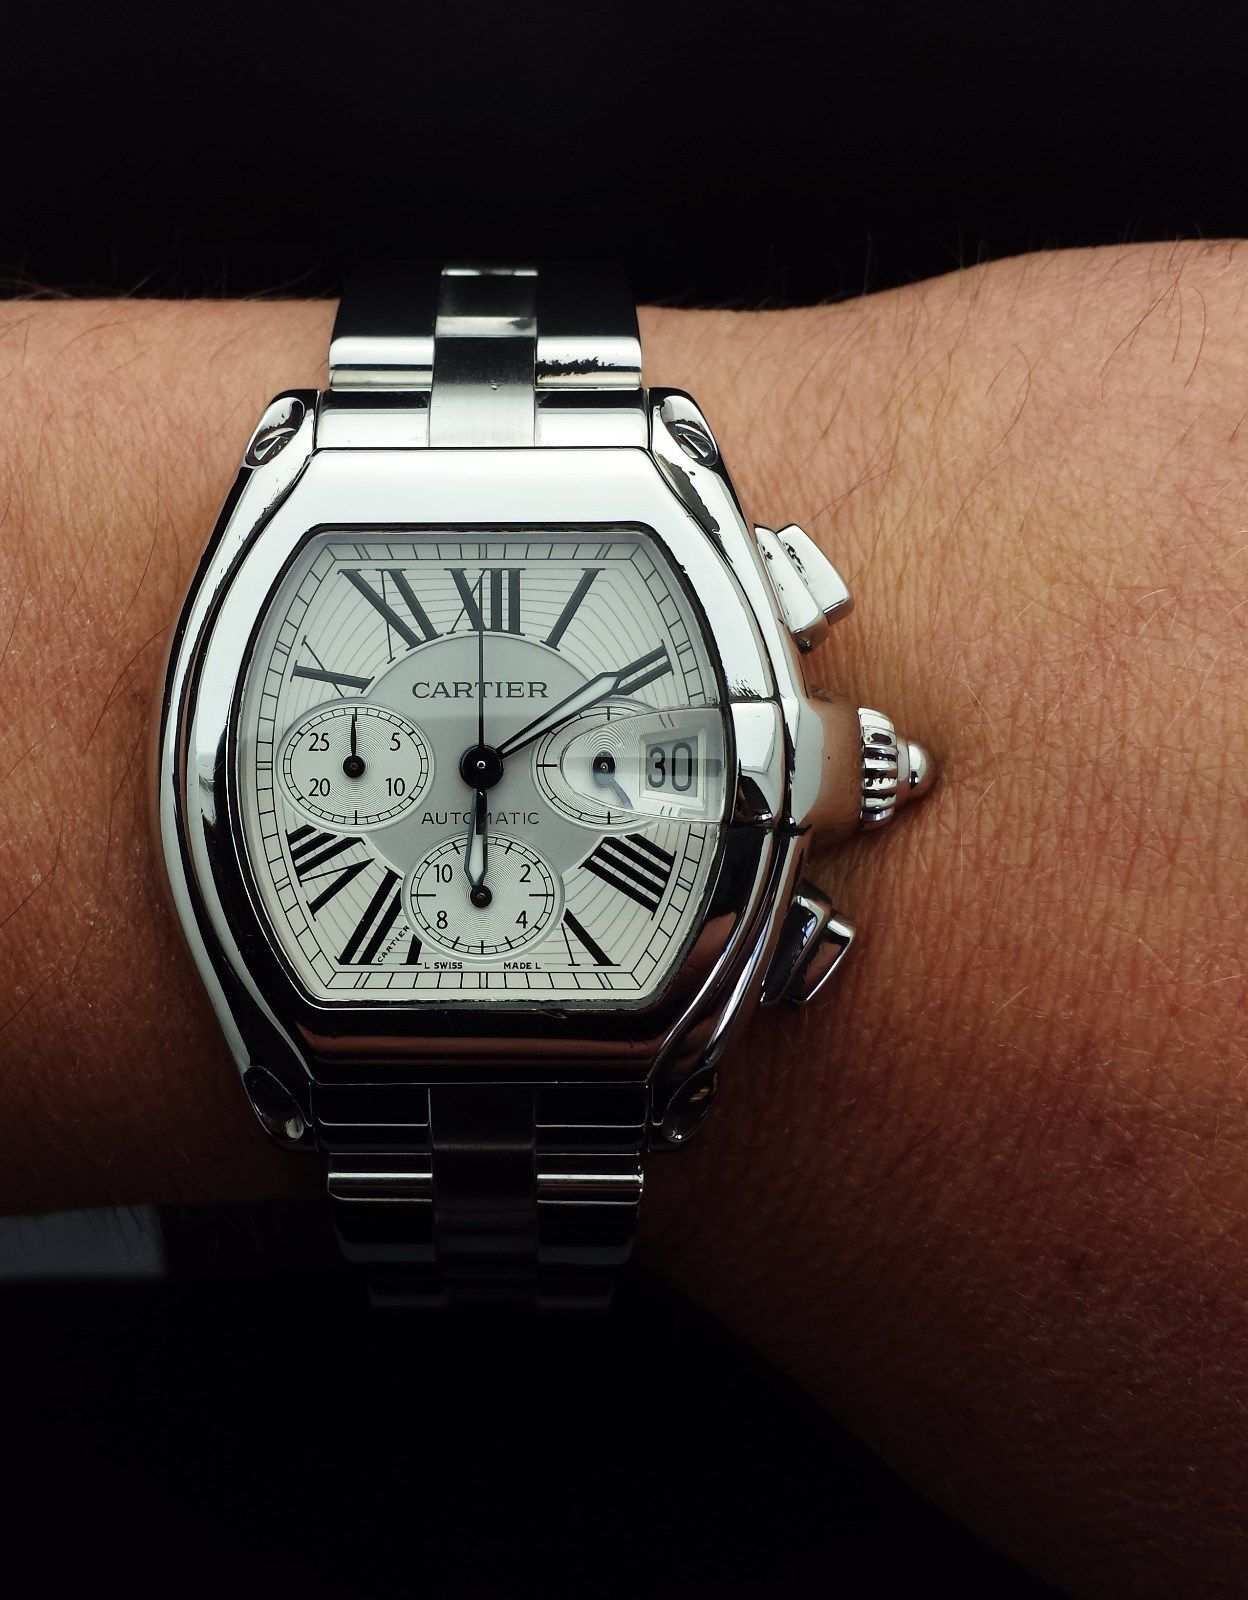 Authentic Cartier Roadster Wrist Watch for Men | eBay ...